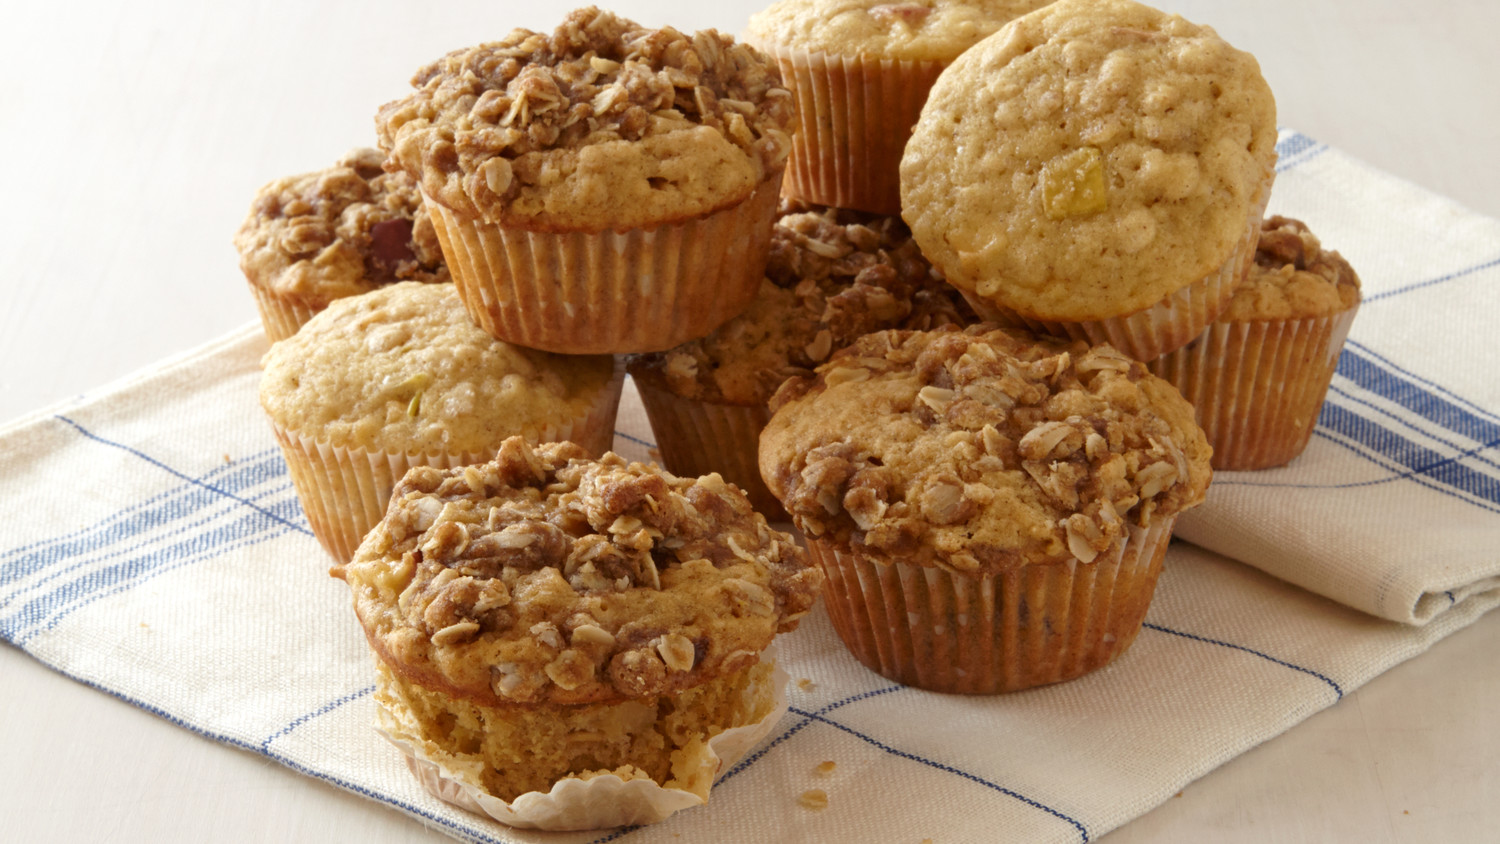 Marvelous Muffin Recipes For Breakfast Brunch Or Anytime Martha Stewart